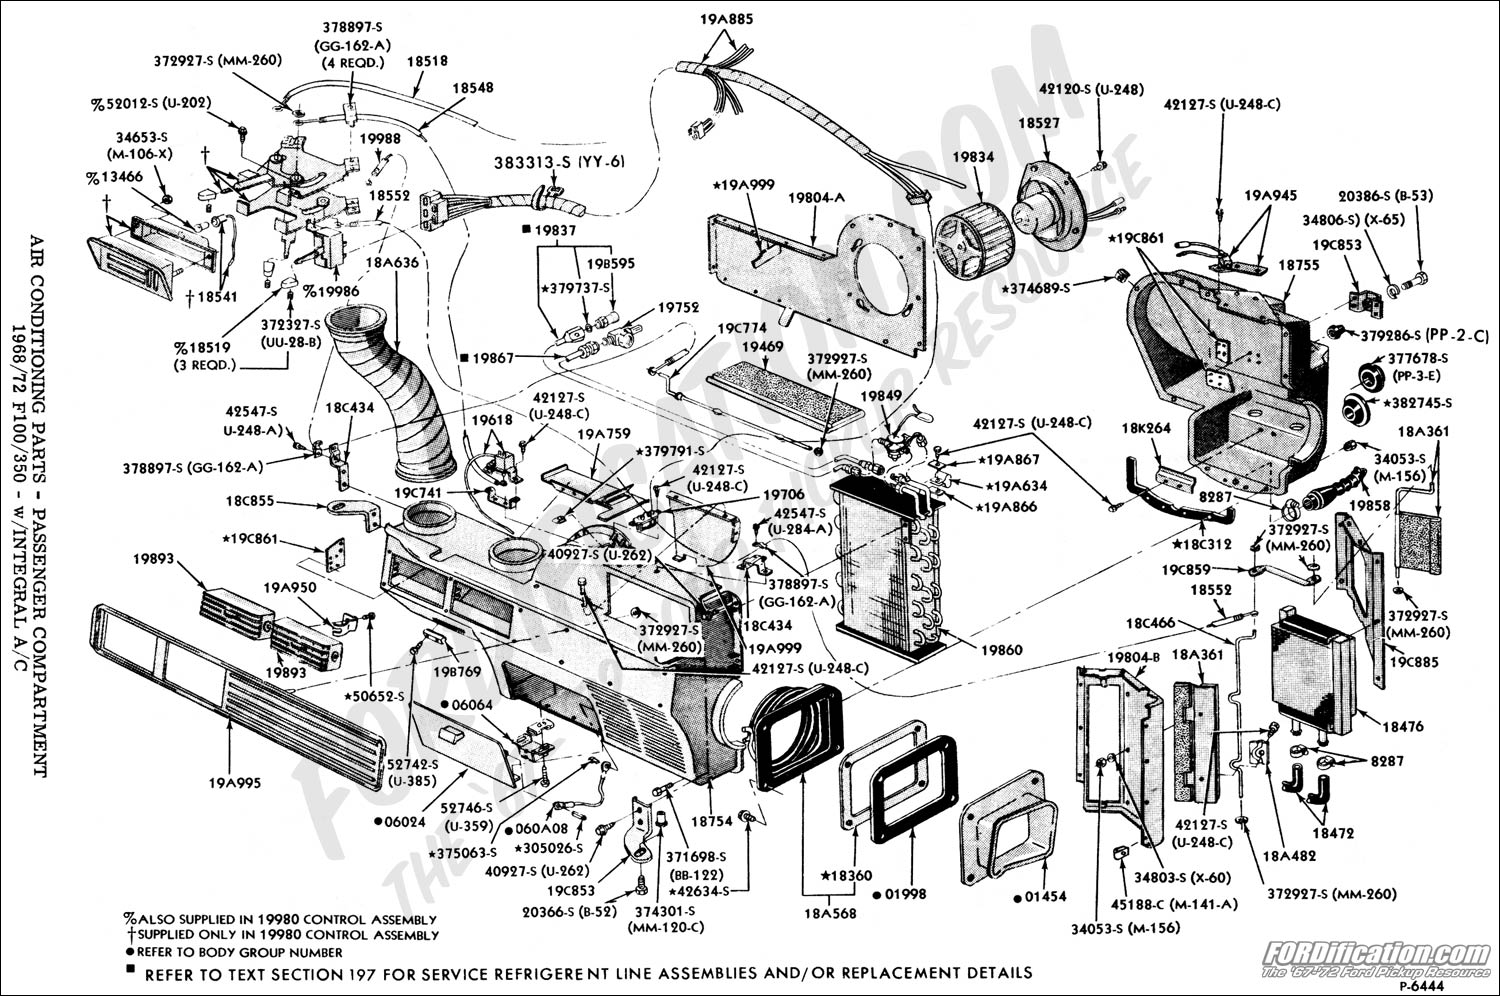 1996 Ford Explorer Wiring Diagram besides Ford E Series E 450 1995 Fuse Box Diagram additionally 2004 Ford F650 Fuse Box moreover 95 F250 Wire Diagram furthermore 94 Ford Ranger Fuel Pump Wiring Diagram. on wiring of 1997 ford f250 stereo diagram